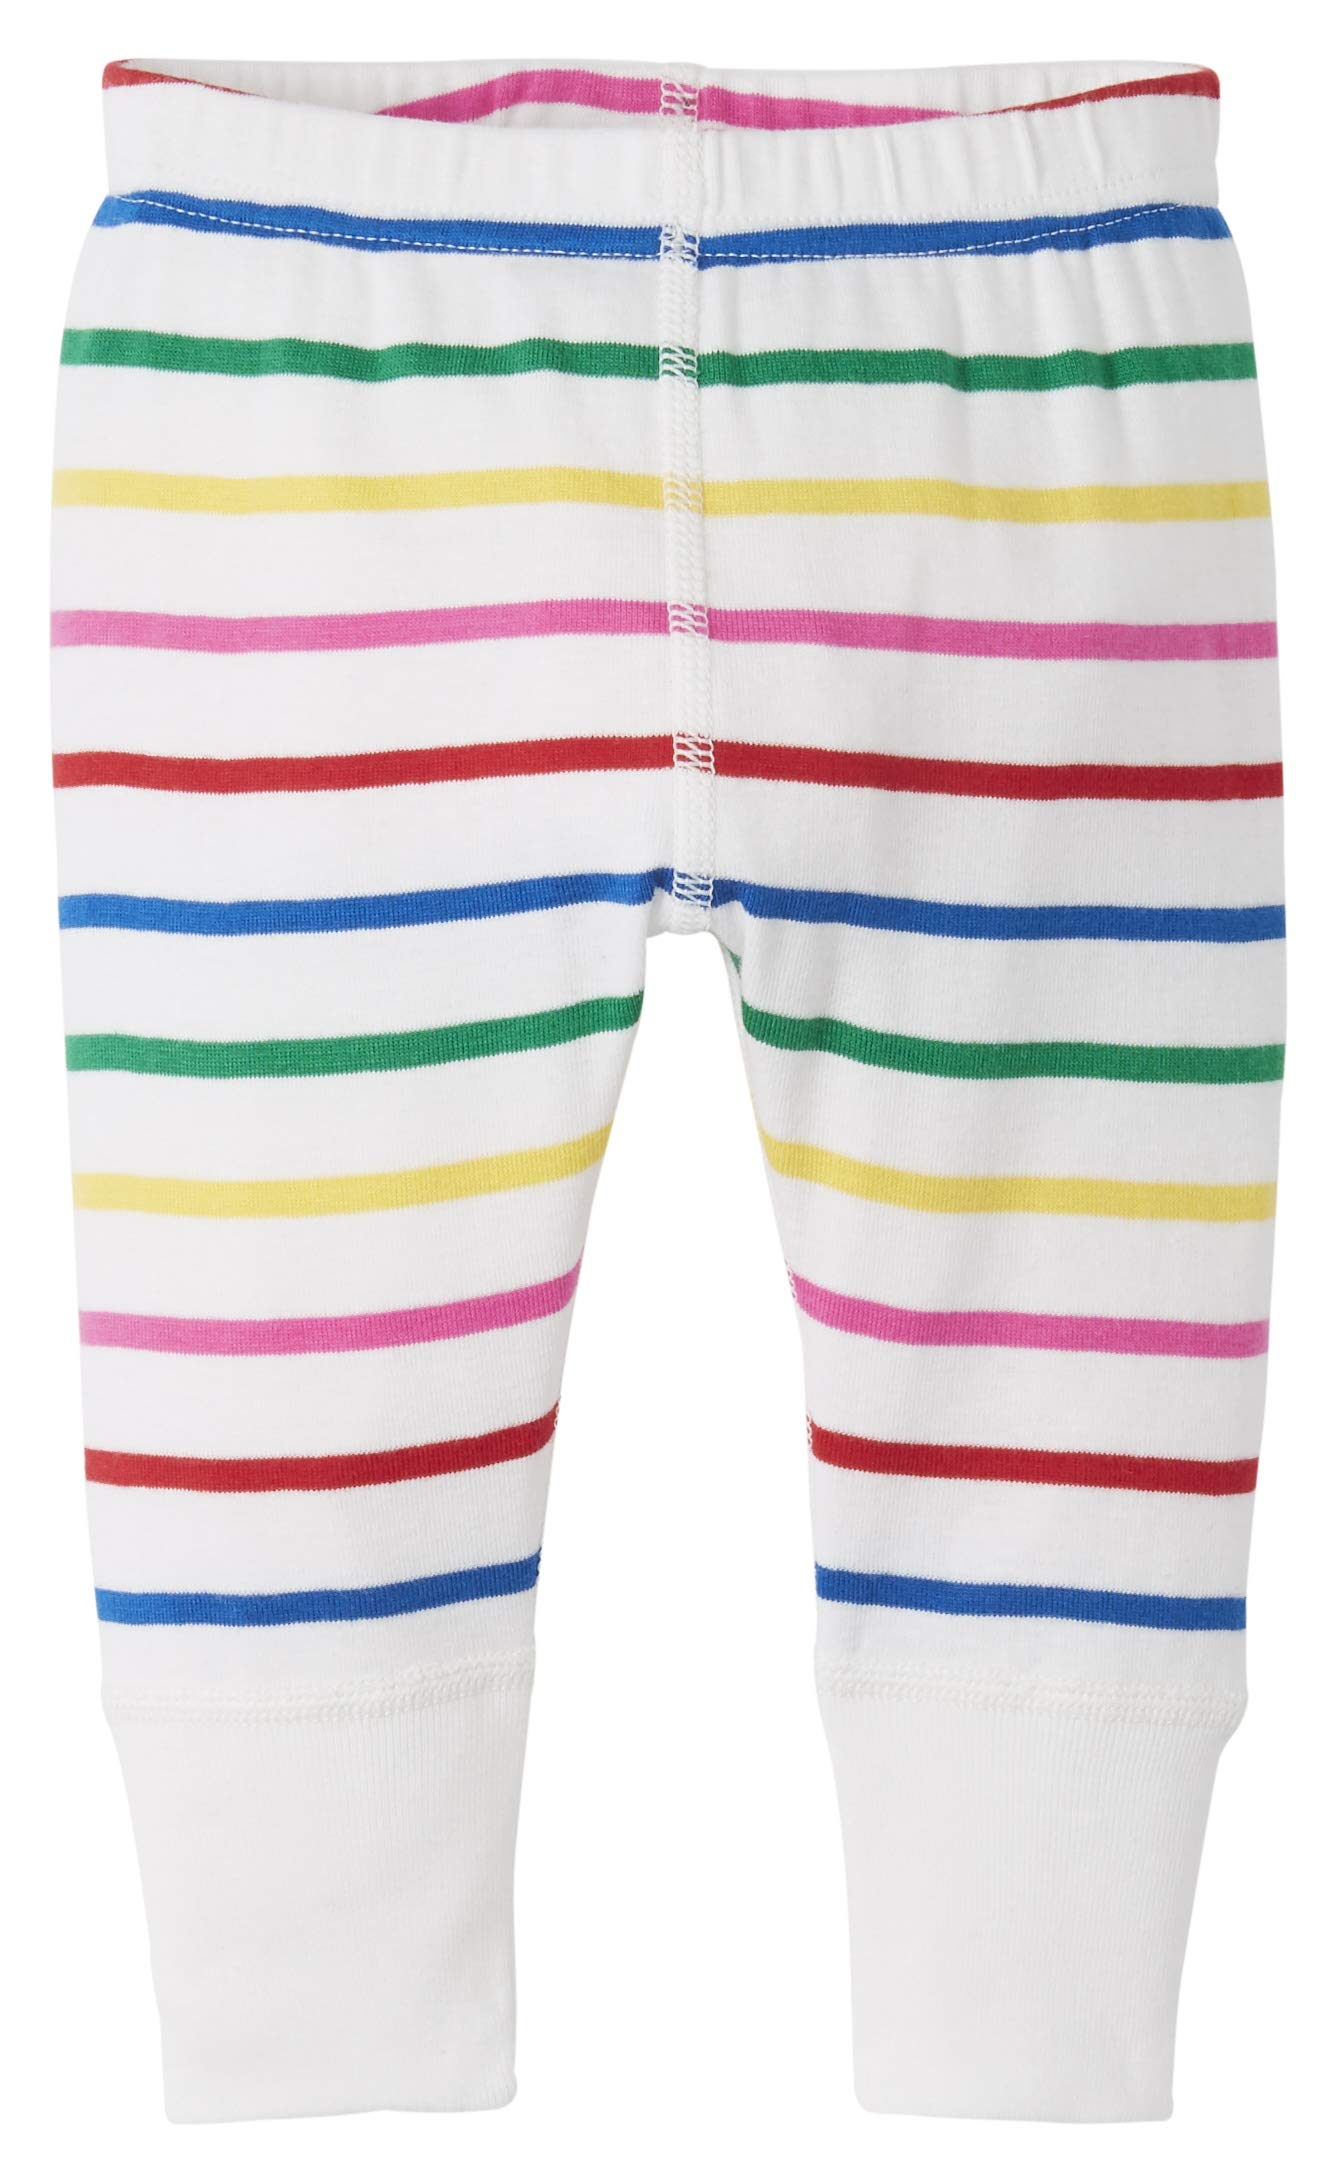 Hanna Andersson Baby/Toddler Organic Cotton Pants